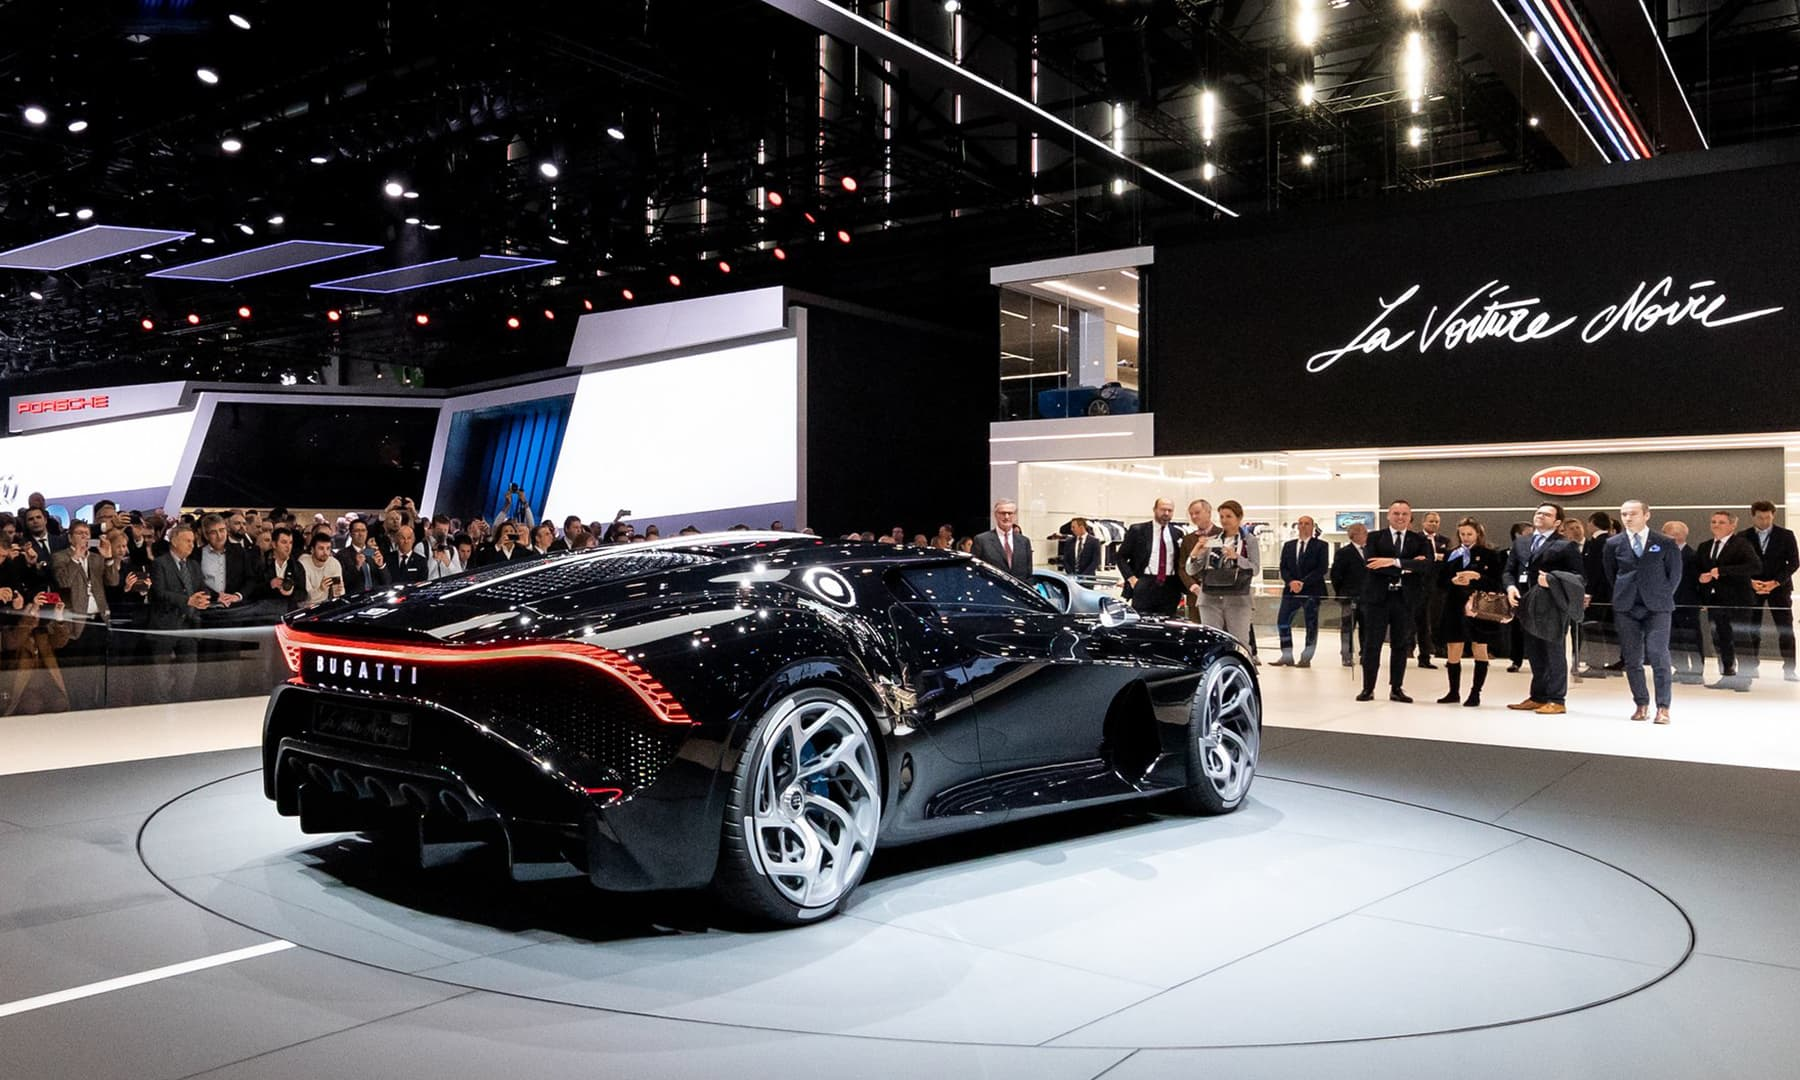 The Bugatti La Voiture Noire Has The Nicest Rear End In: Looking Is Free: Luxury, High-end Rides Abundant At Geneva